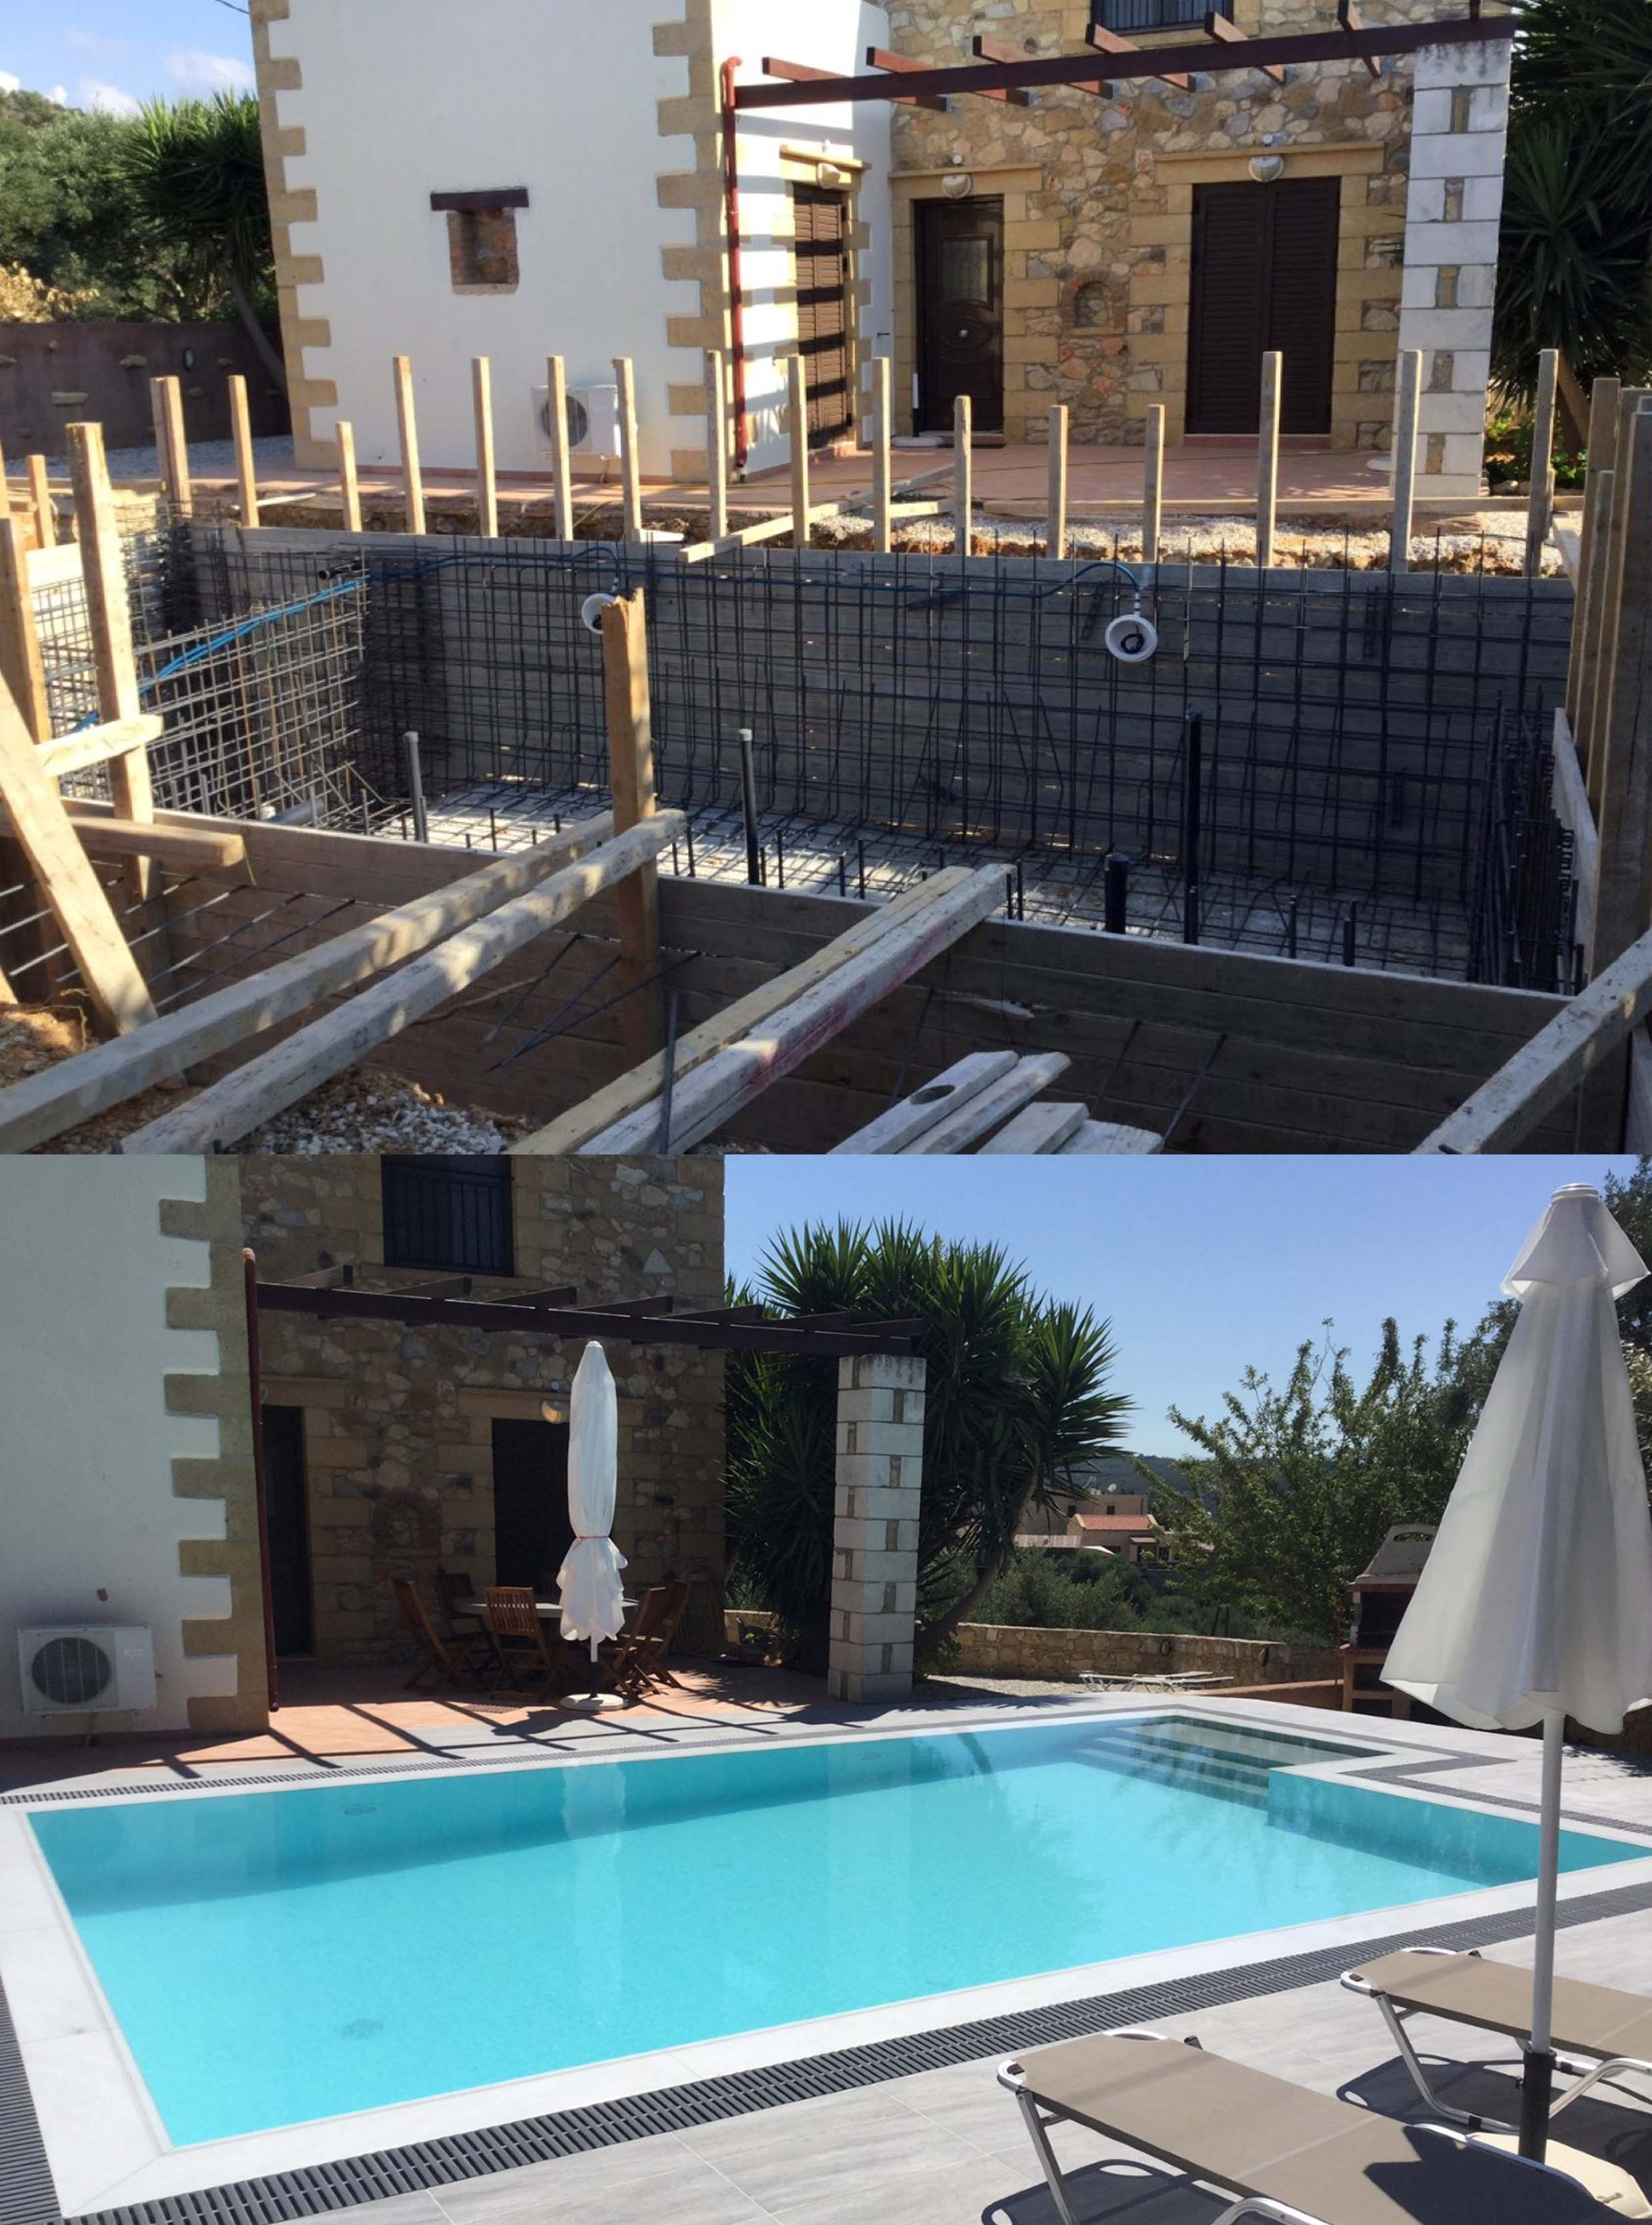 Swimming Pools - Your Home on Crete, Real Estate Agency